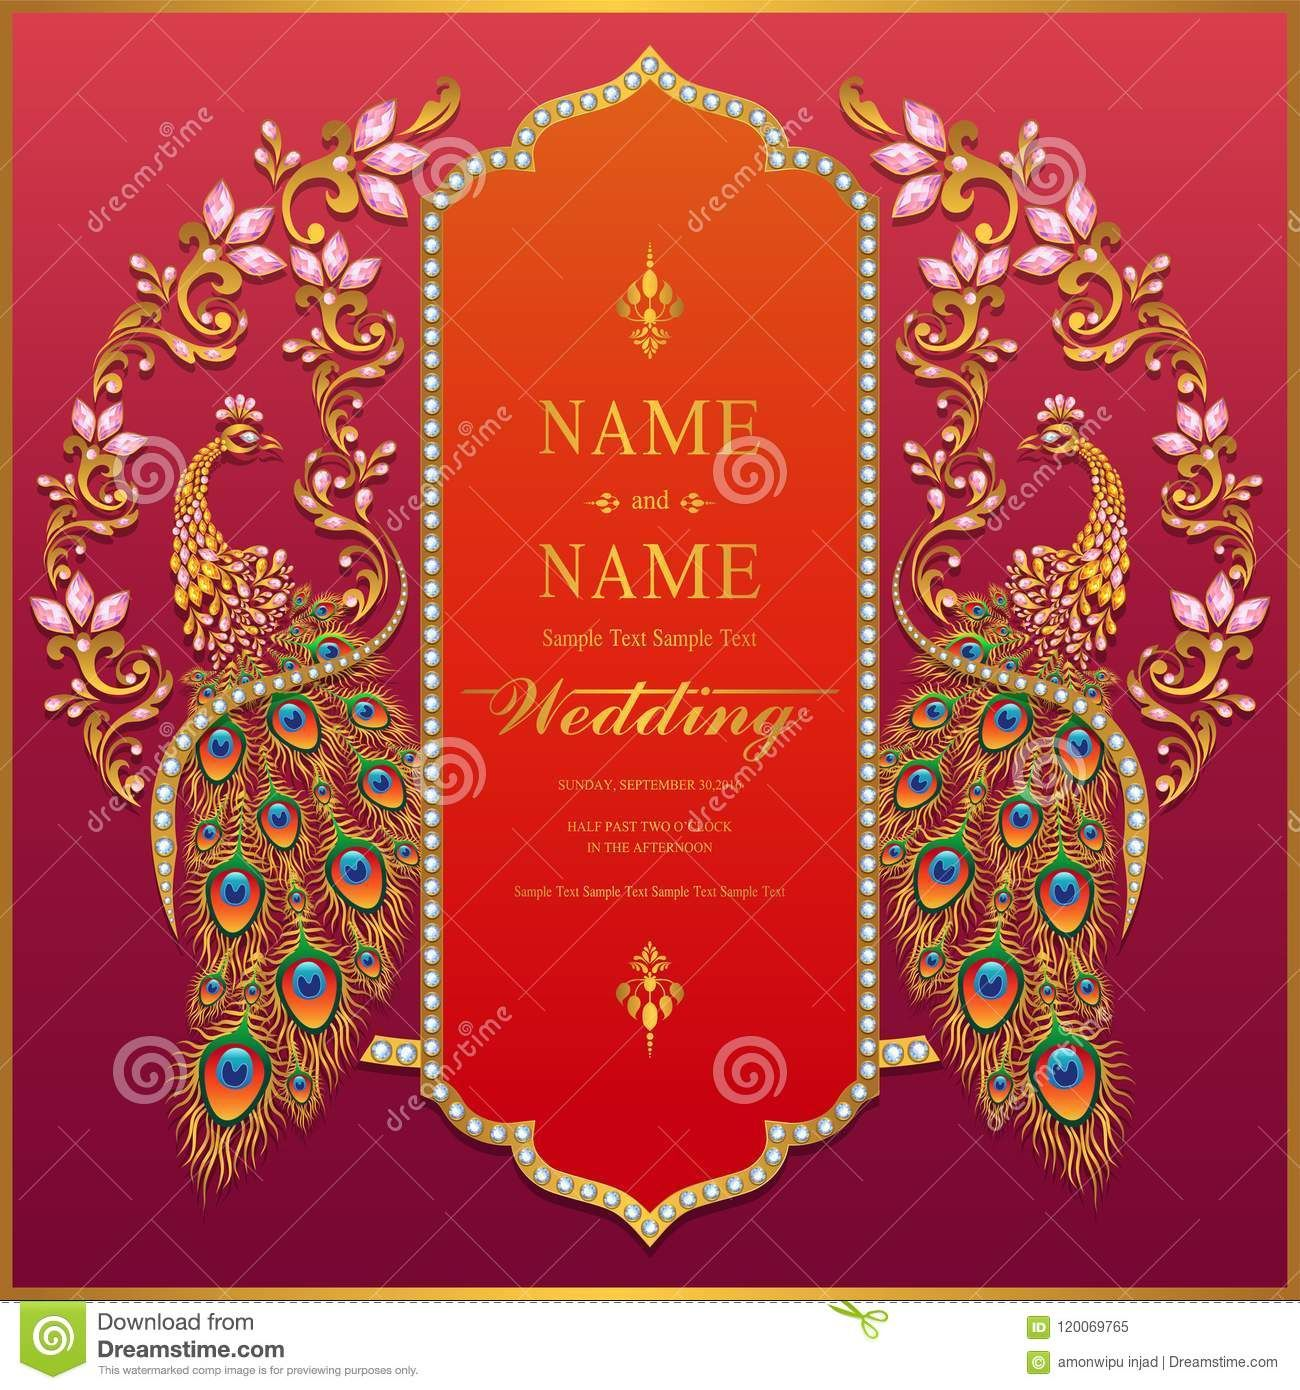 Background Indian Wedding Invitation Templates